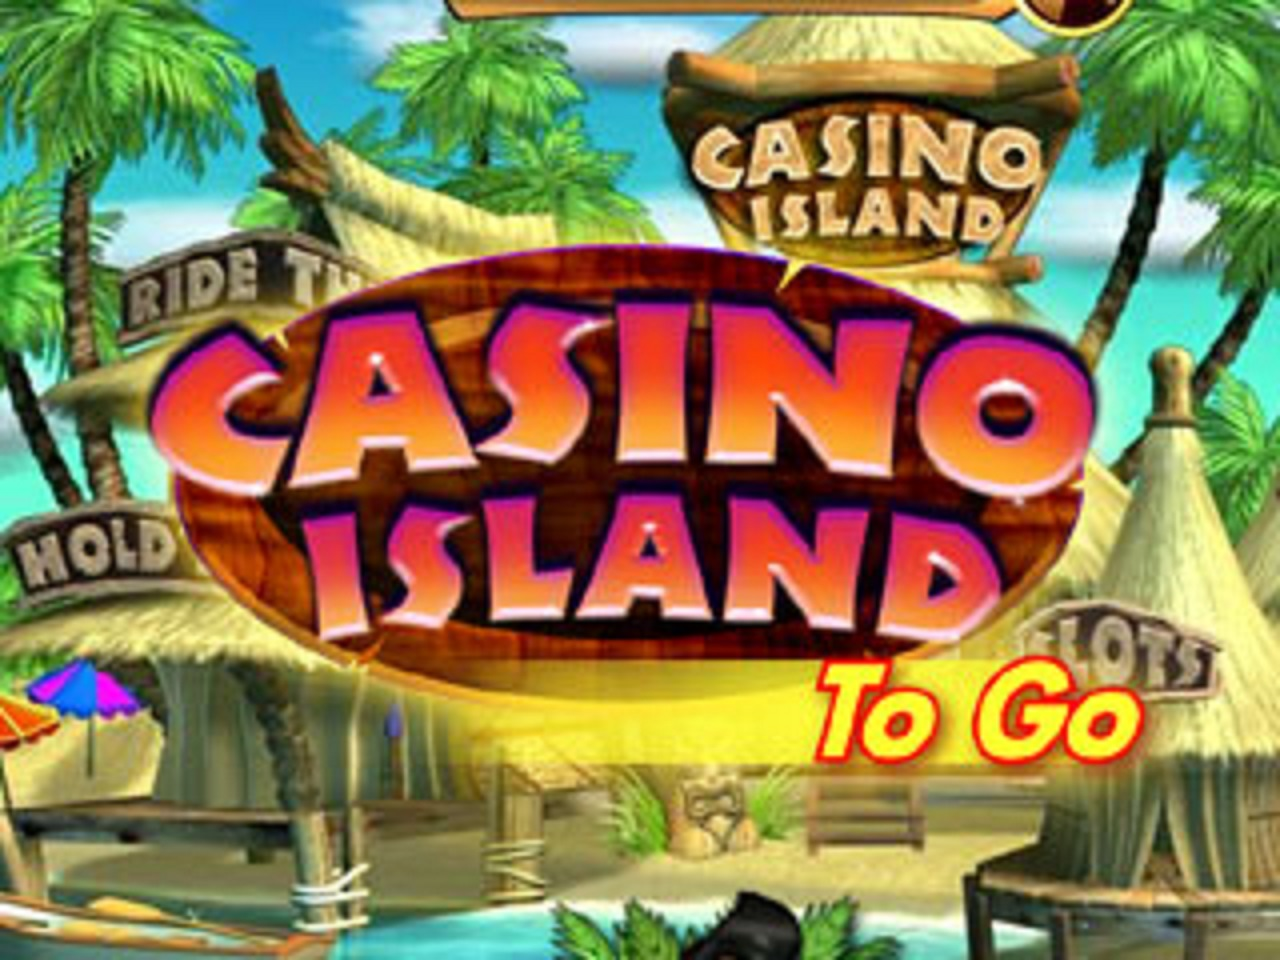 Casino game go island casino.com homeoffun.worlds link